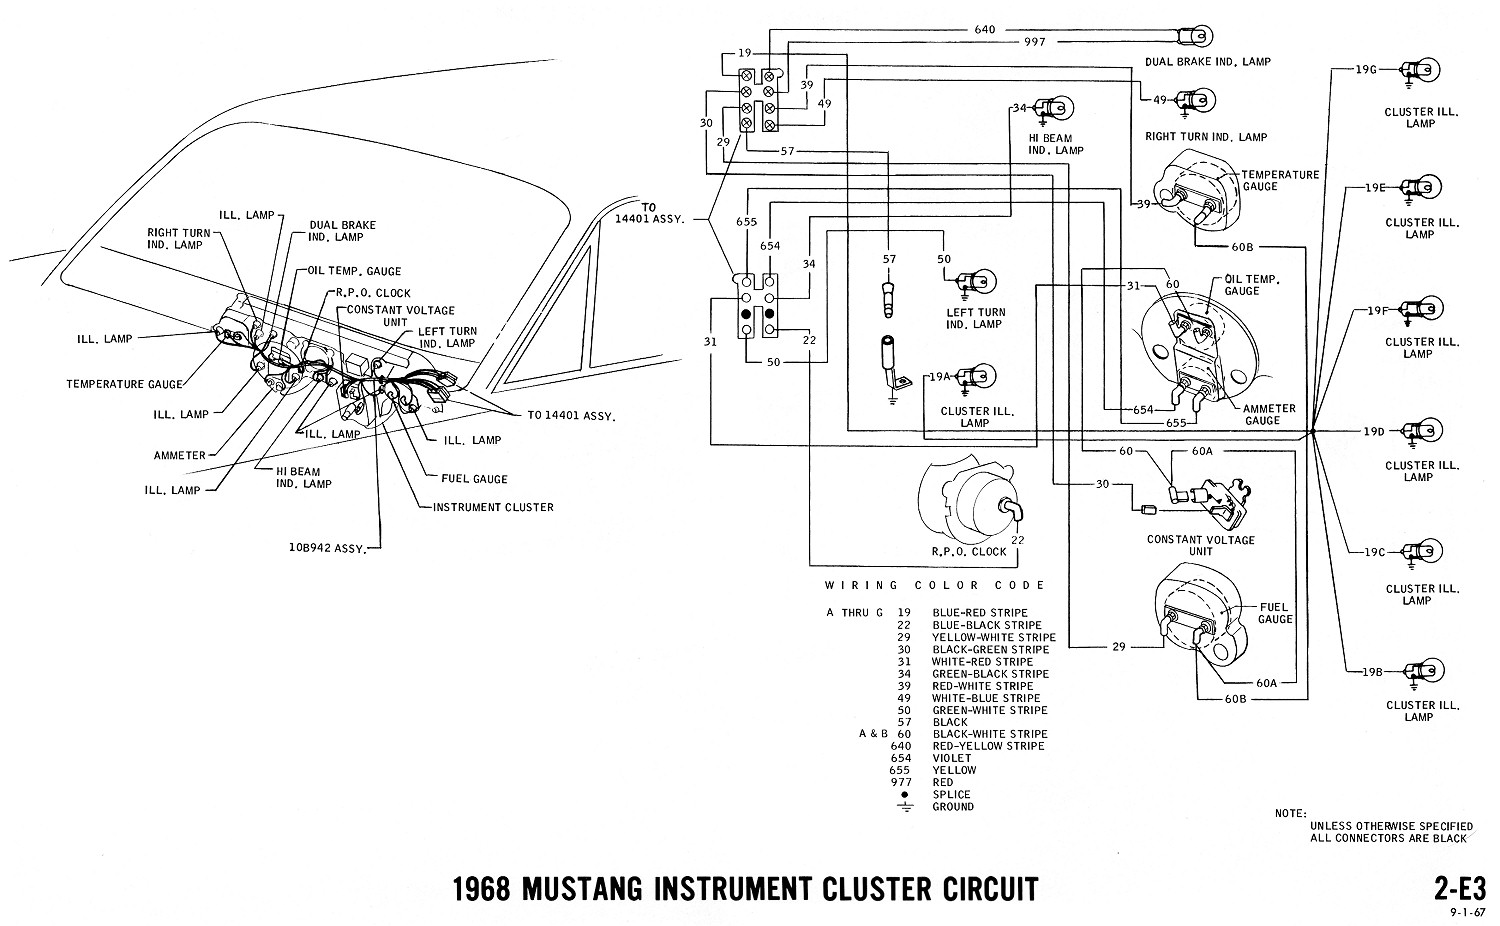 70 Mustang Dash Wiring Diagram - wiring diagrams schematics